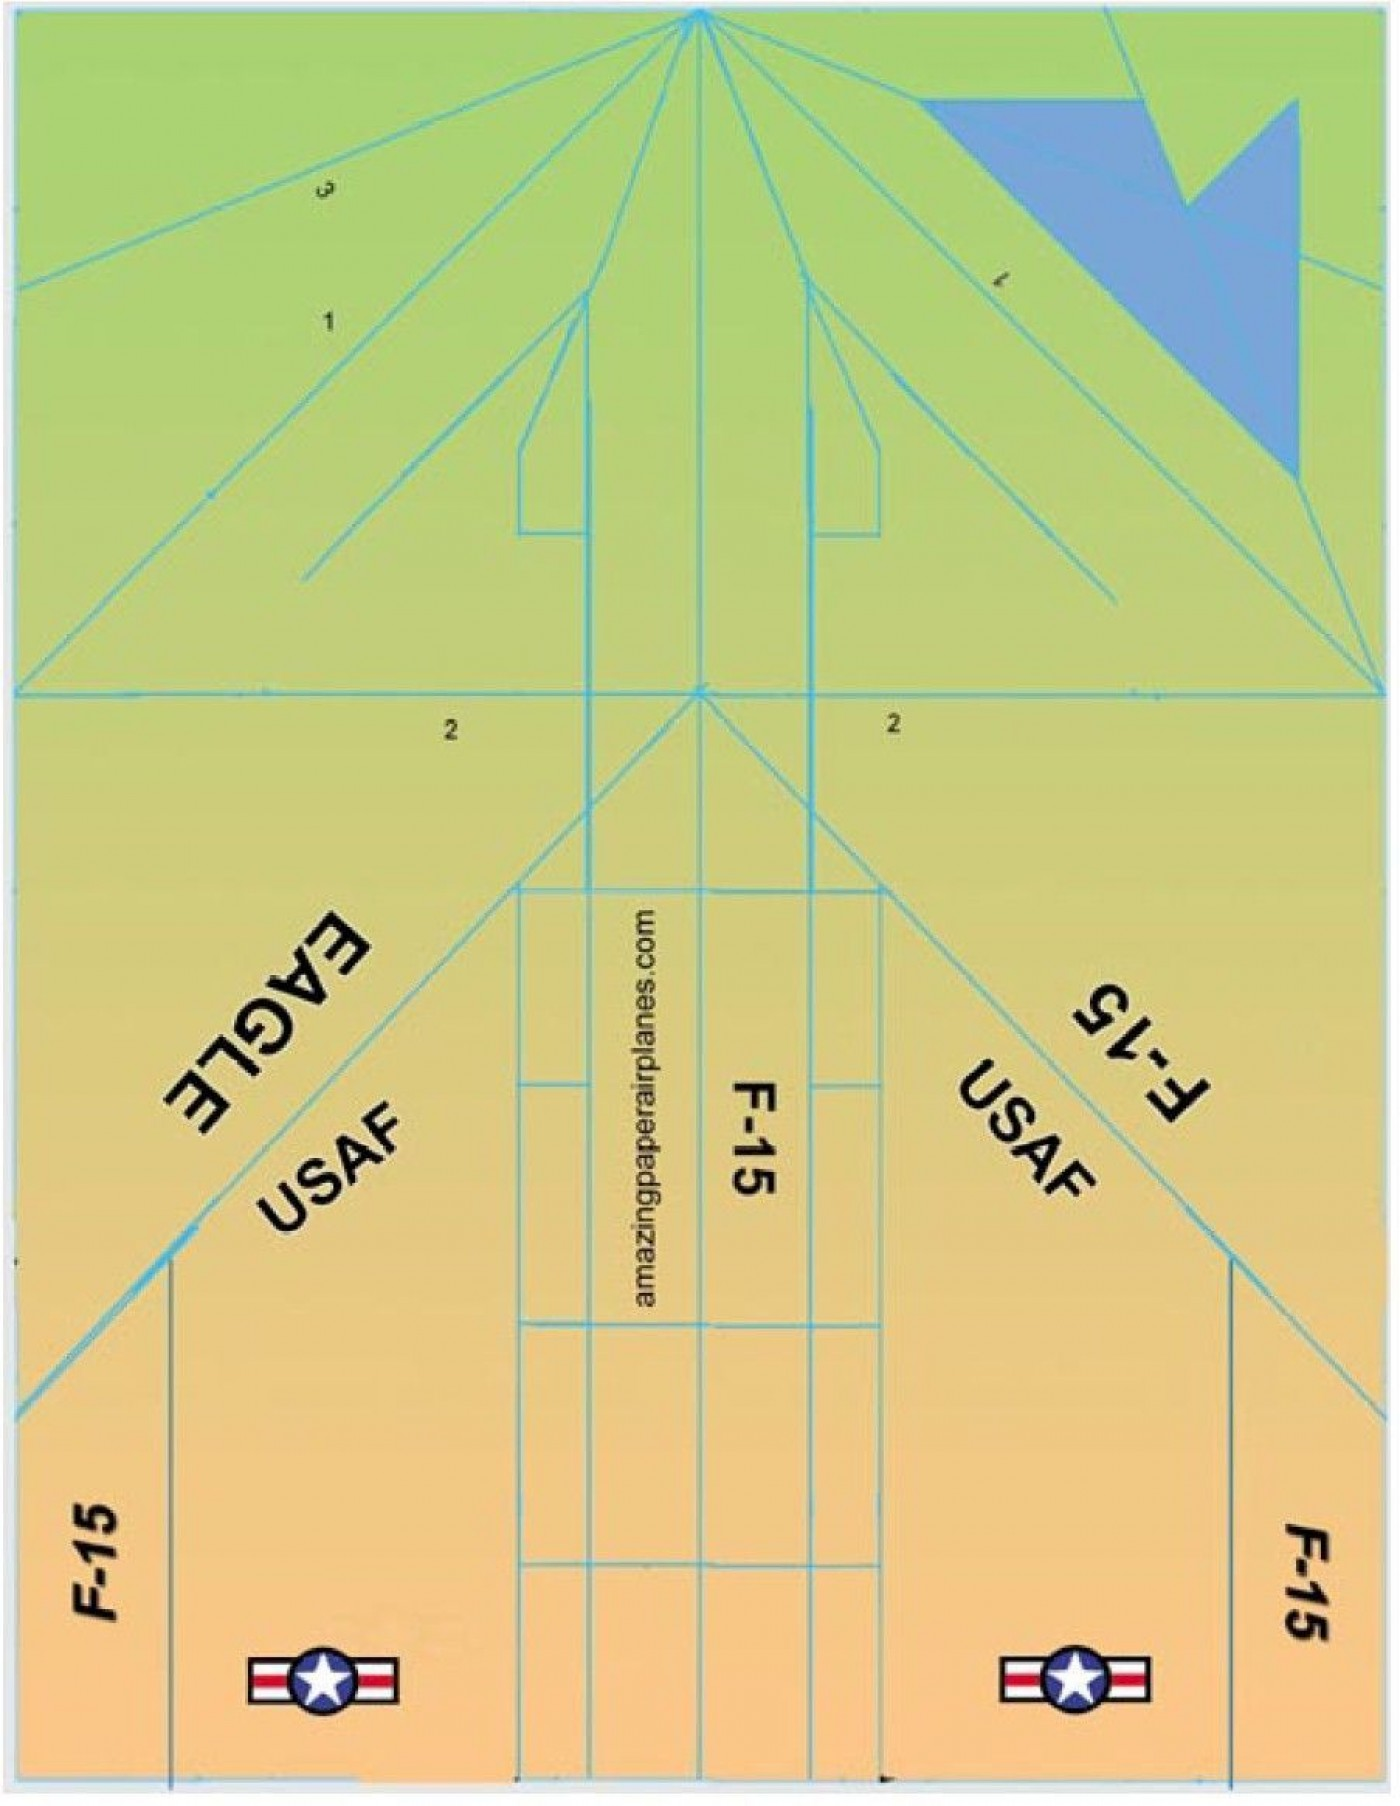 000 Magnificent Printable Paper Airplane Pattern Highest Quality  Free Plane Design Designs-printable Template1400